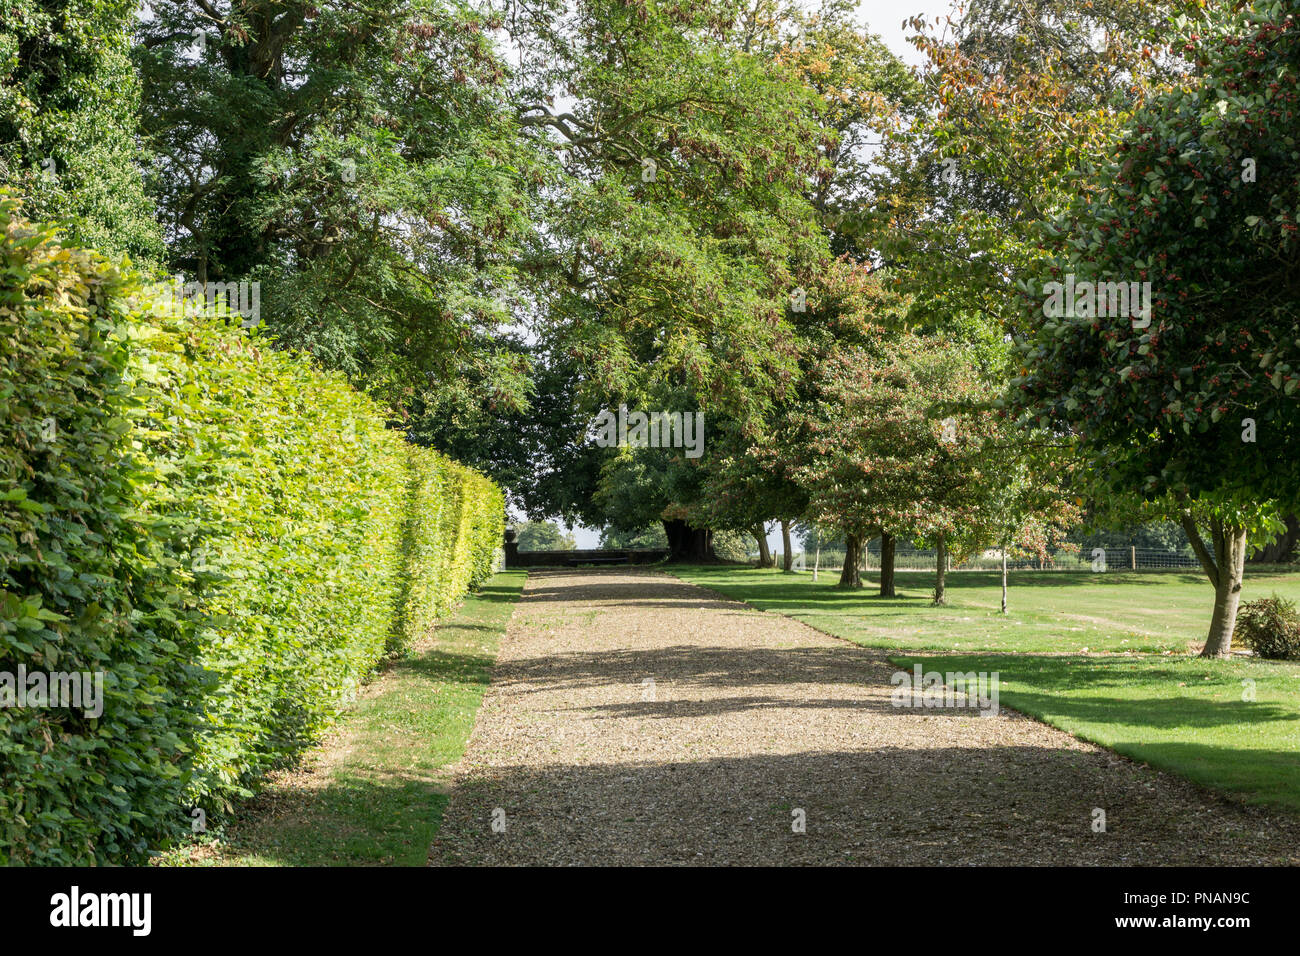 Tree lined drive in the grounds of Weston Hall, the country seat of the famous literary Sitwell family; Northamptonshire, UK - Stock Image